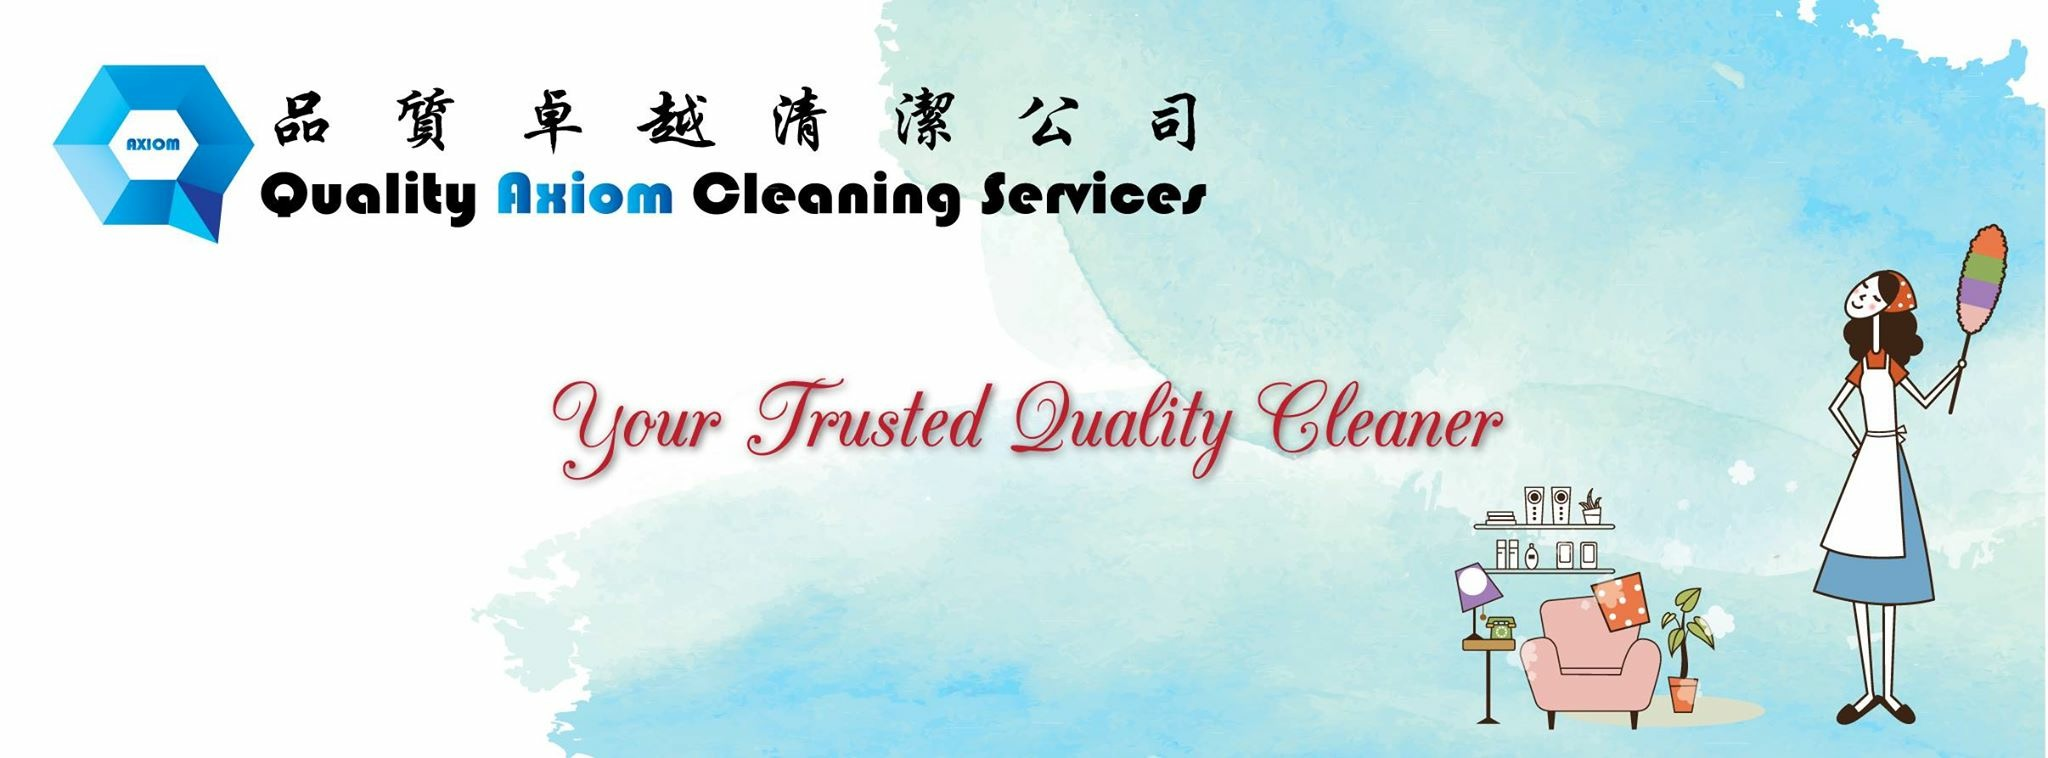 Quality Axiom Cleaning Services